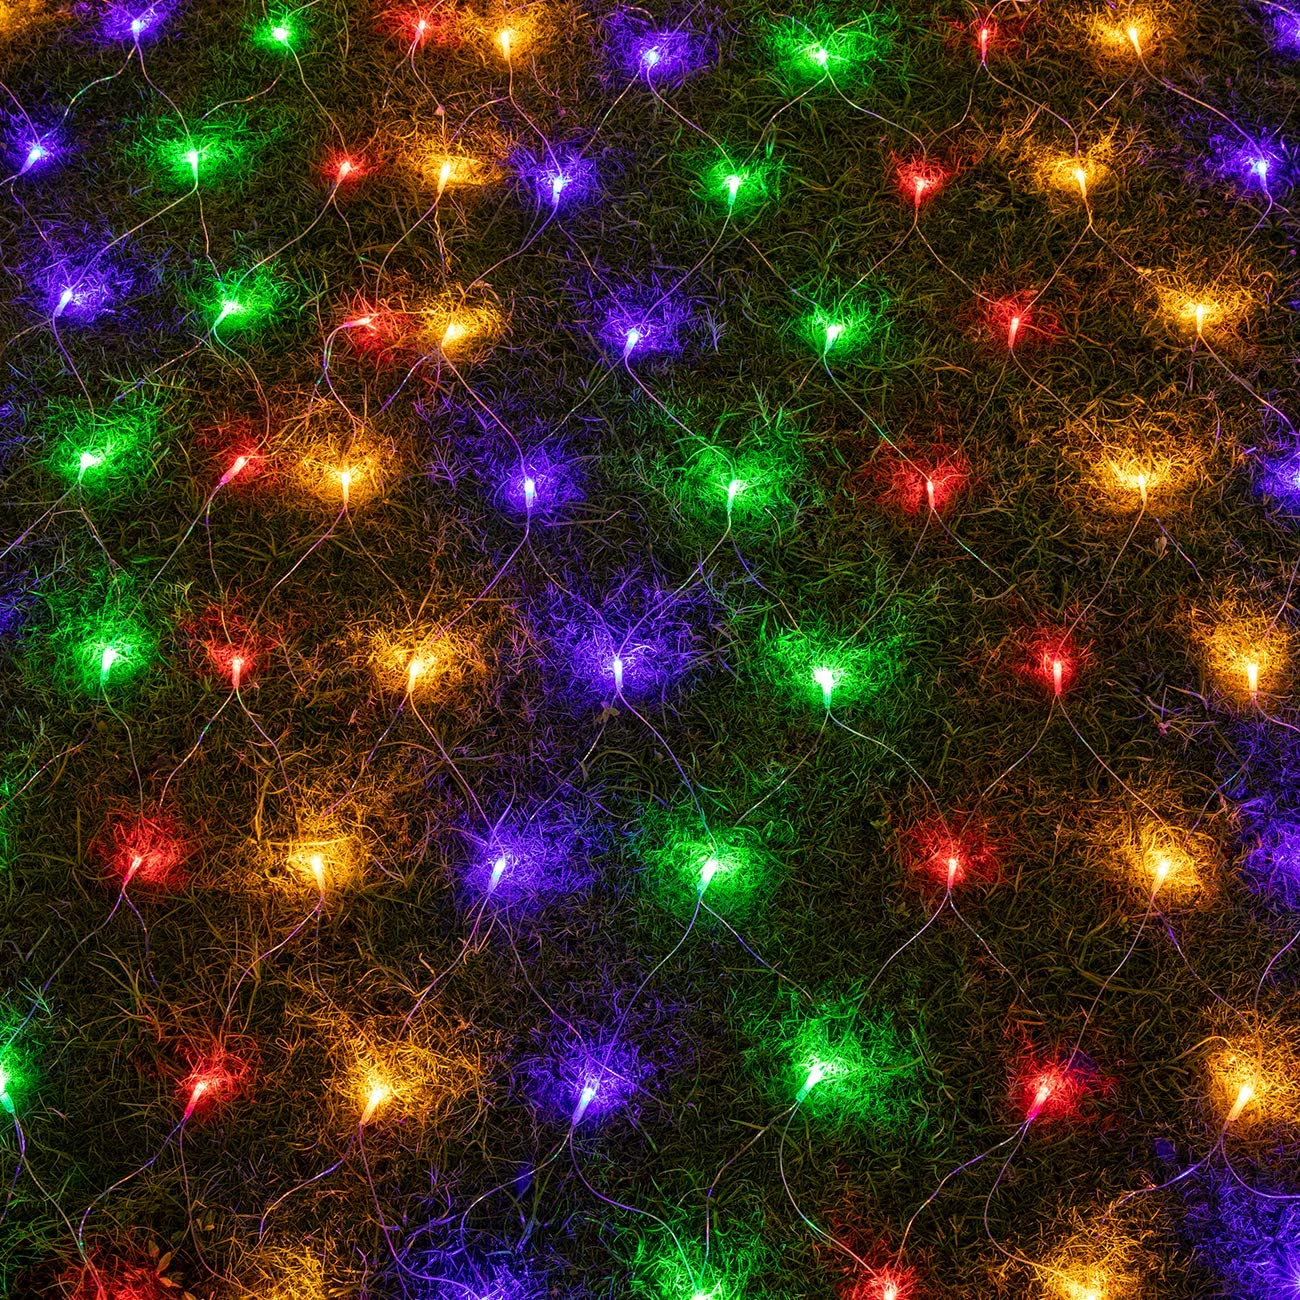 AWQ 200 LED 9.8ft x 6.6ft String Lights Net Mesh Lights Christmas Net Lights 8 Modes for Christmas Wedding Party Home Garden Lawn Bushes Bedroom Indoor Outdoor Decor (Multicolor)